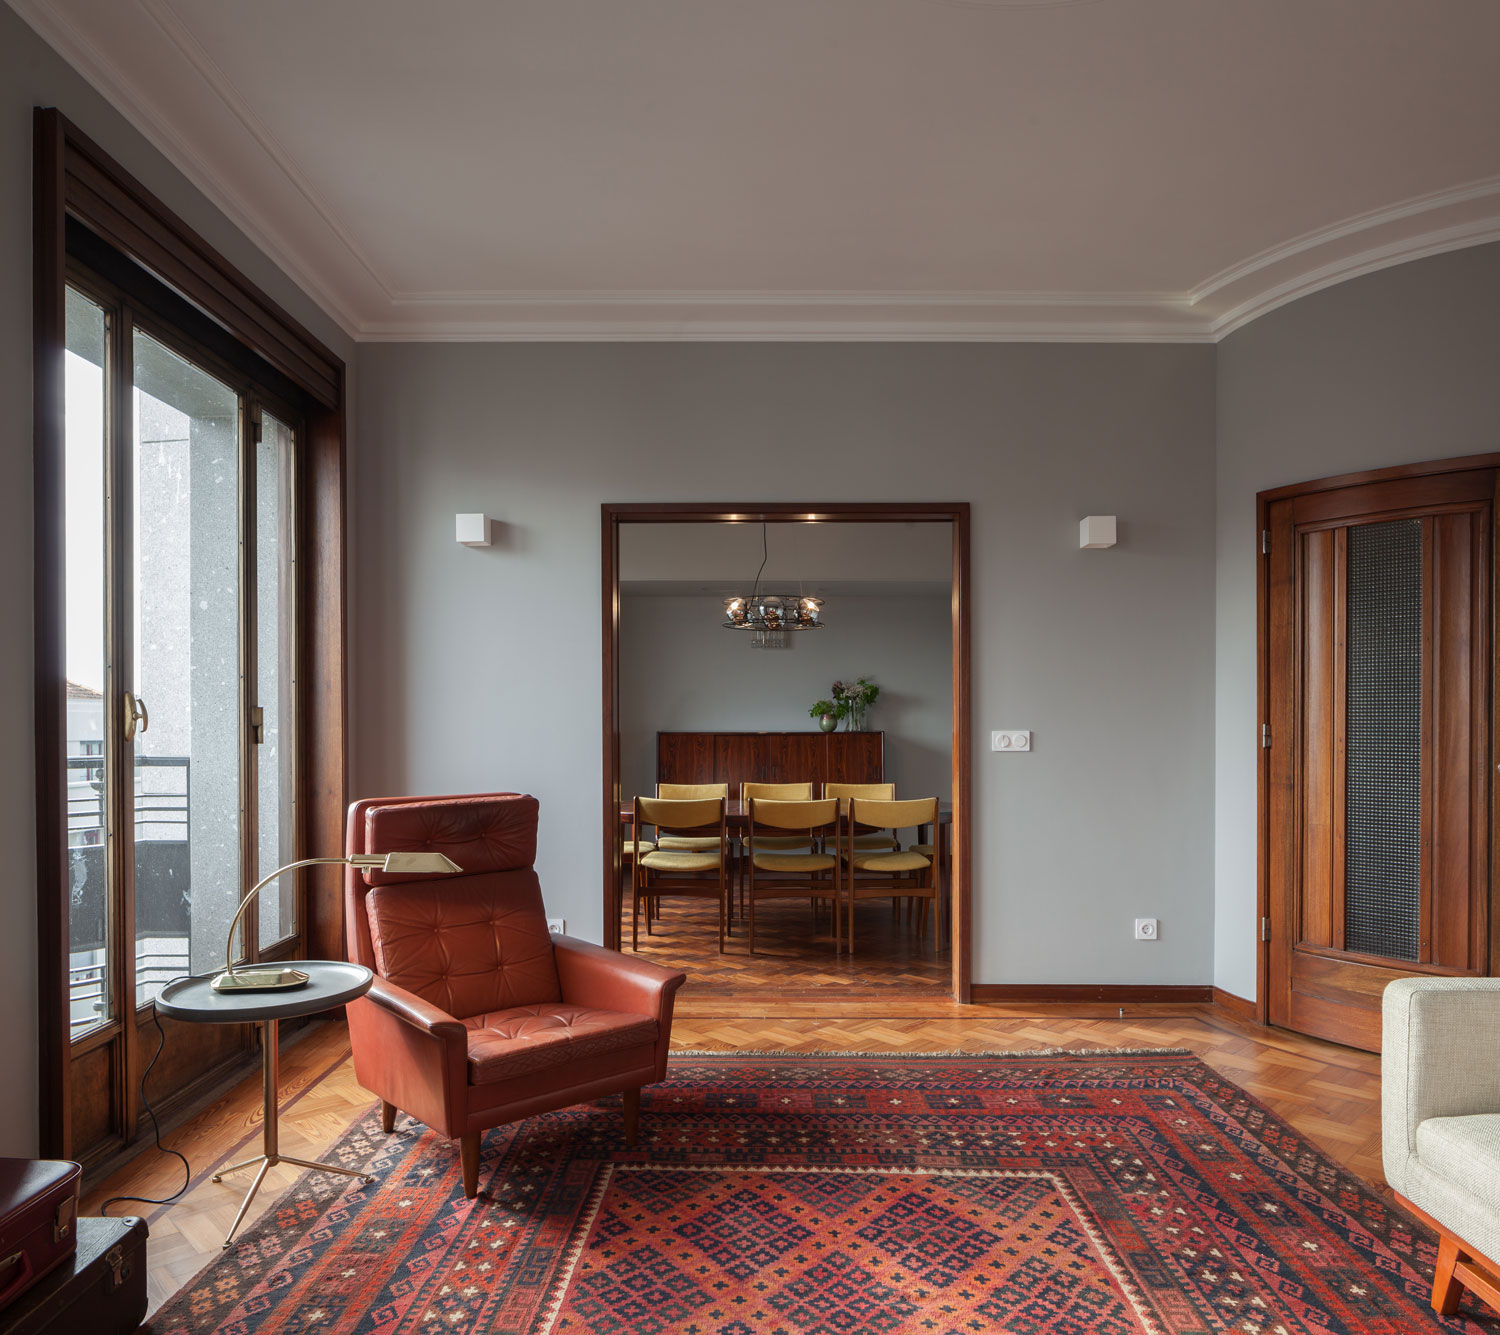 1940s Retro Apartment Renovations in Porto by Atelier In Vitro ...